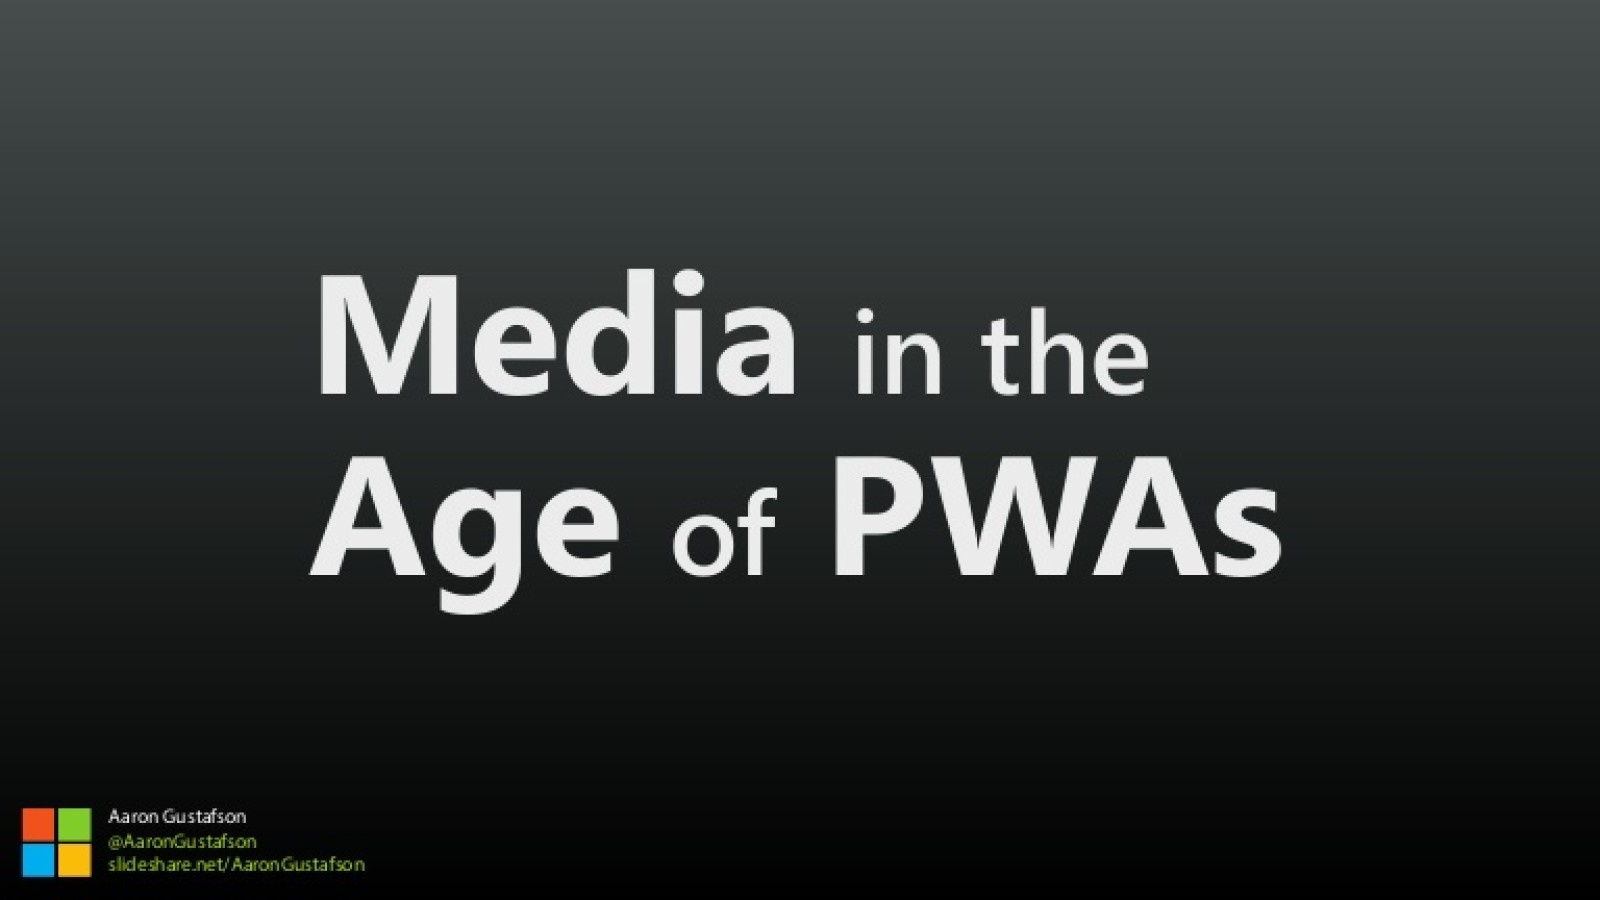 Media in the Age of PWAs